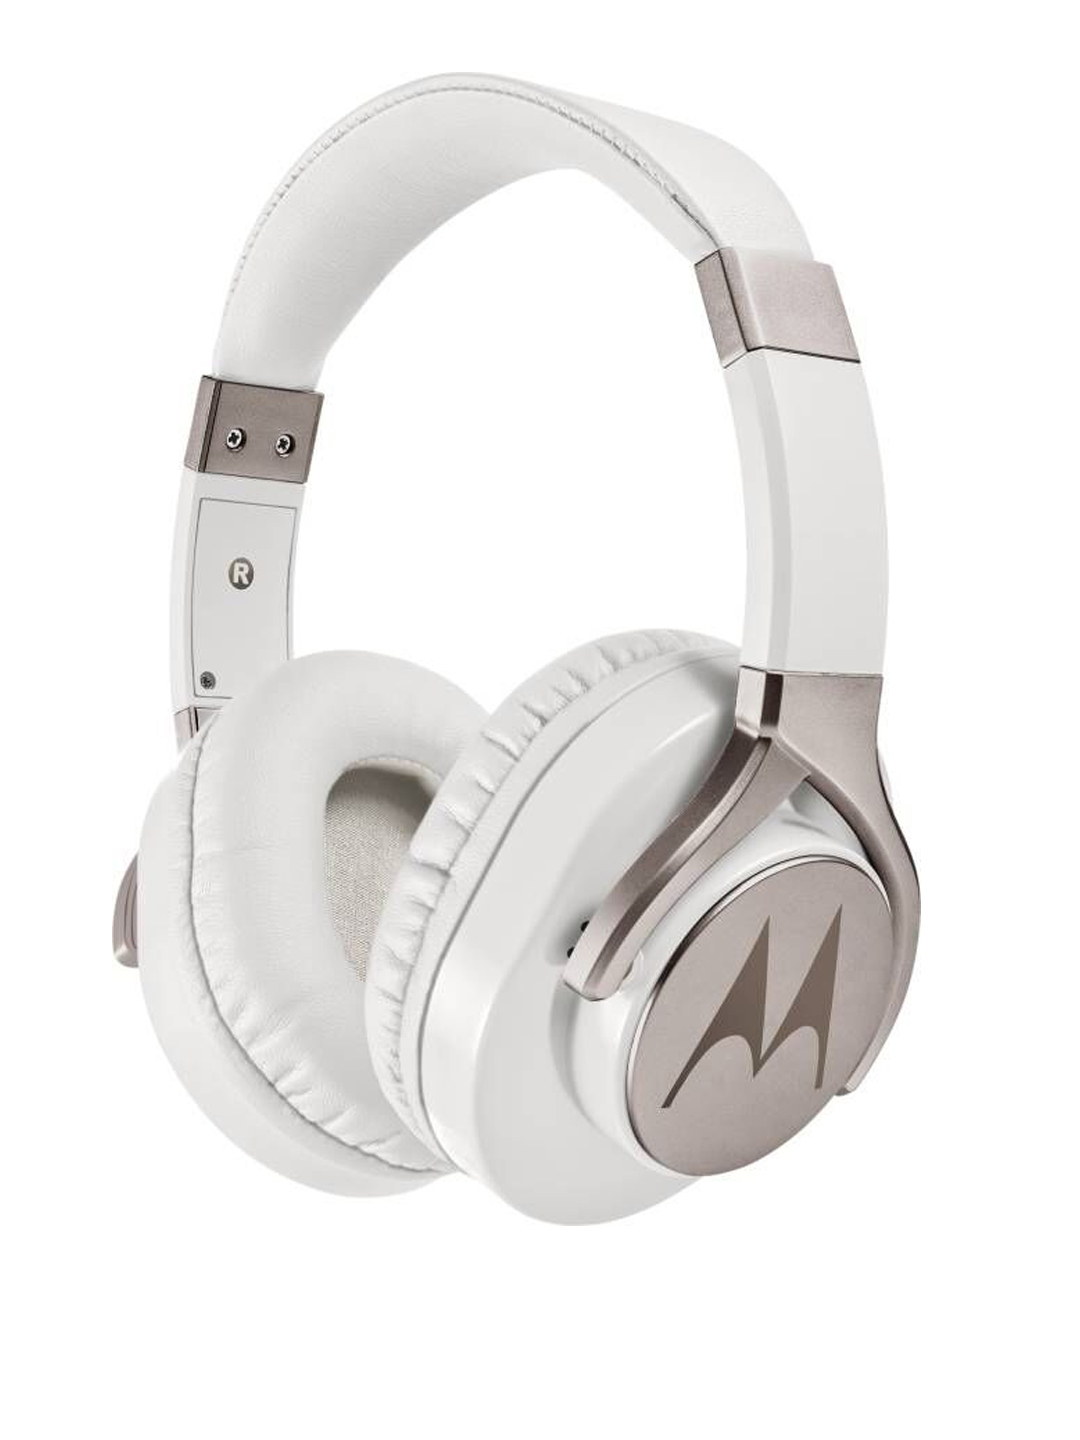 Motorola White   Pink Pulse Max Wired Headphone With Mic Motorola Headphones